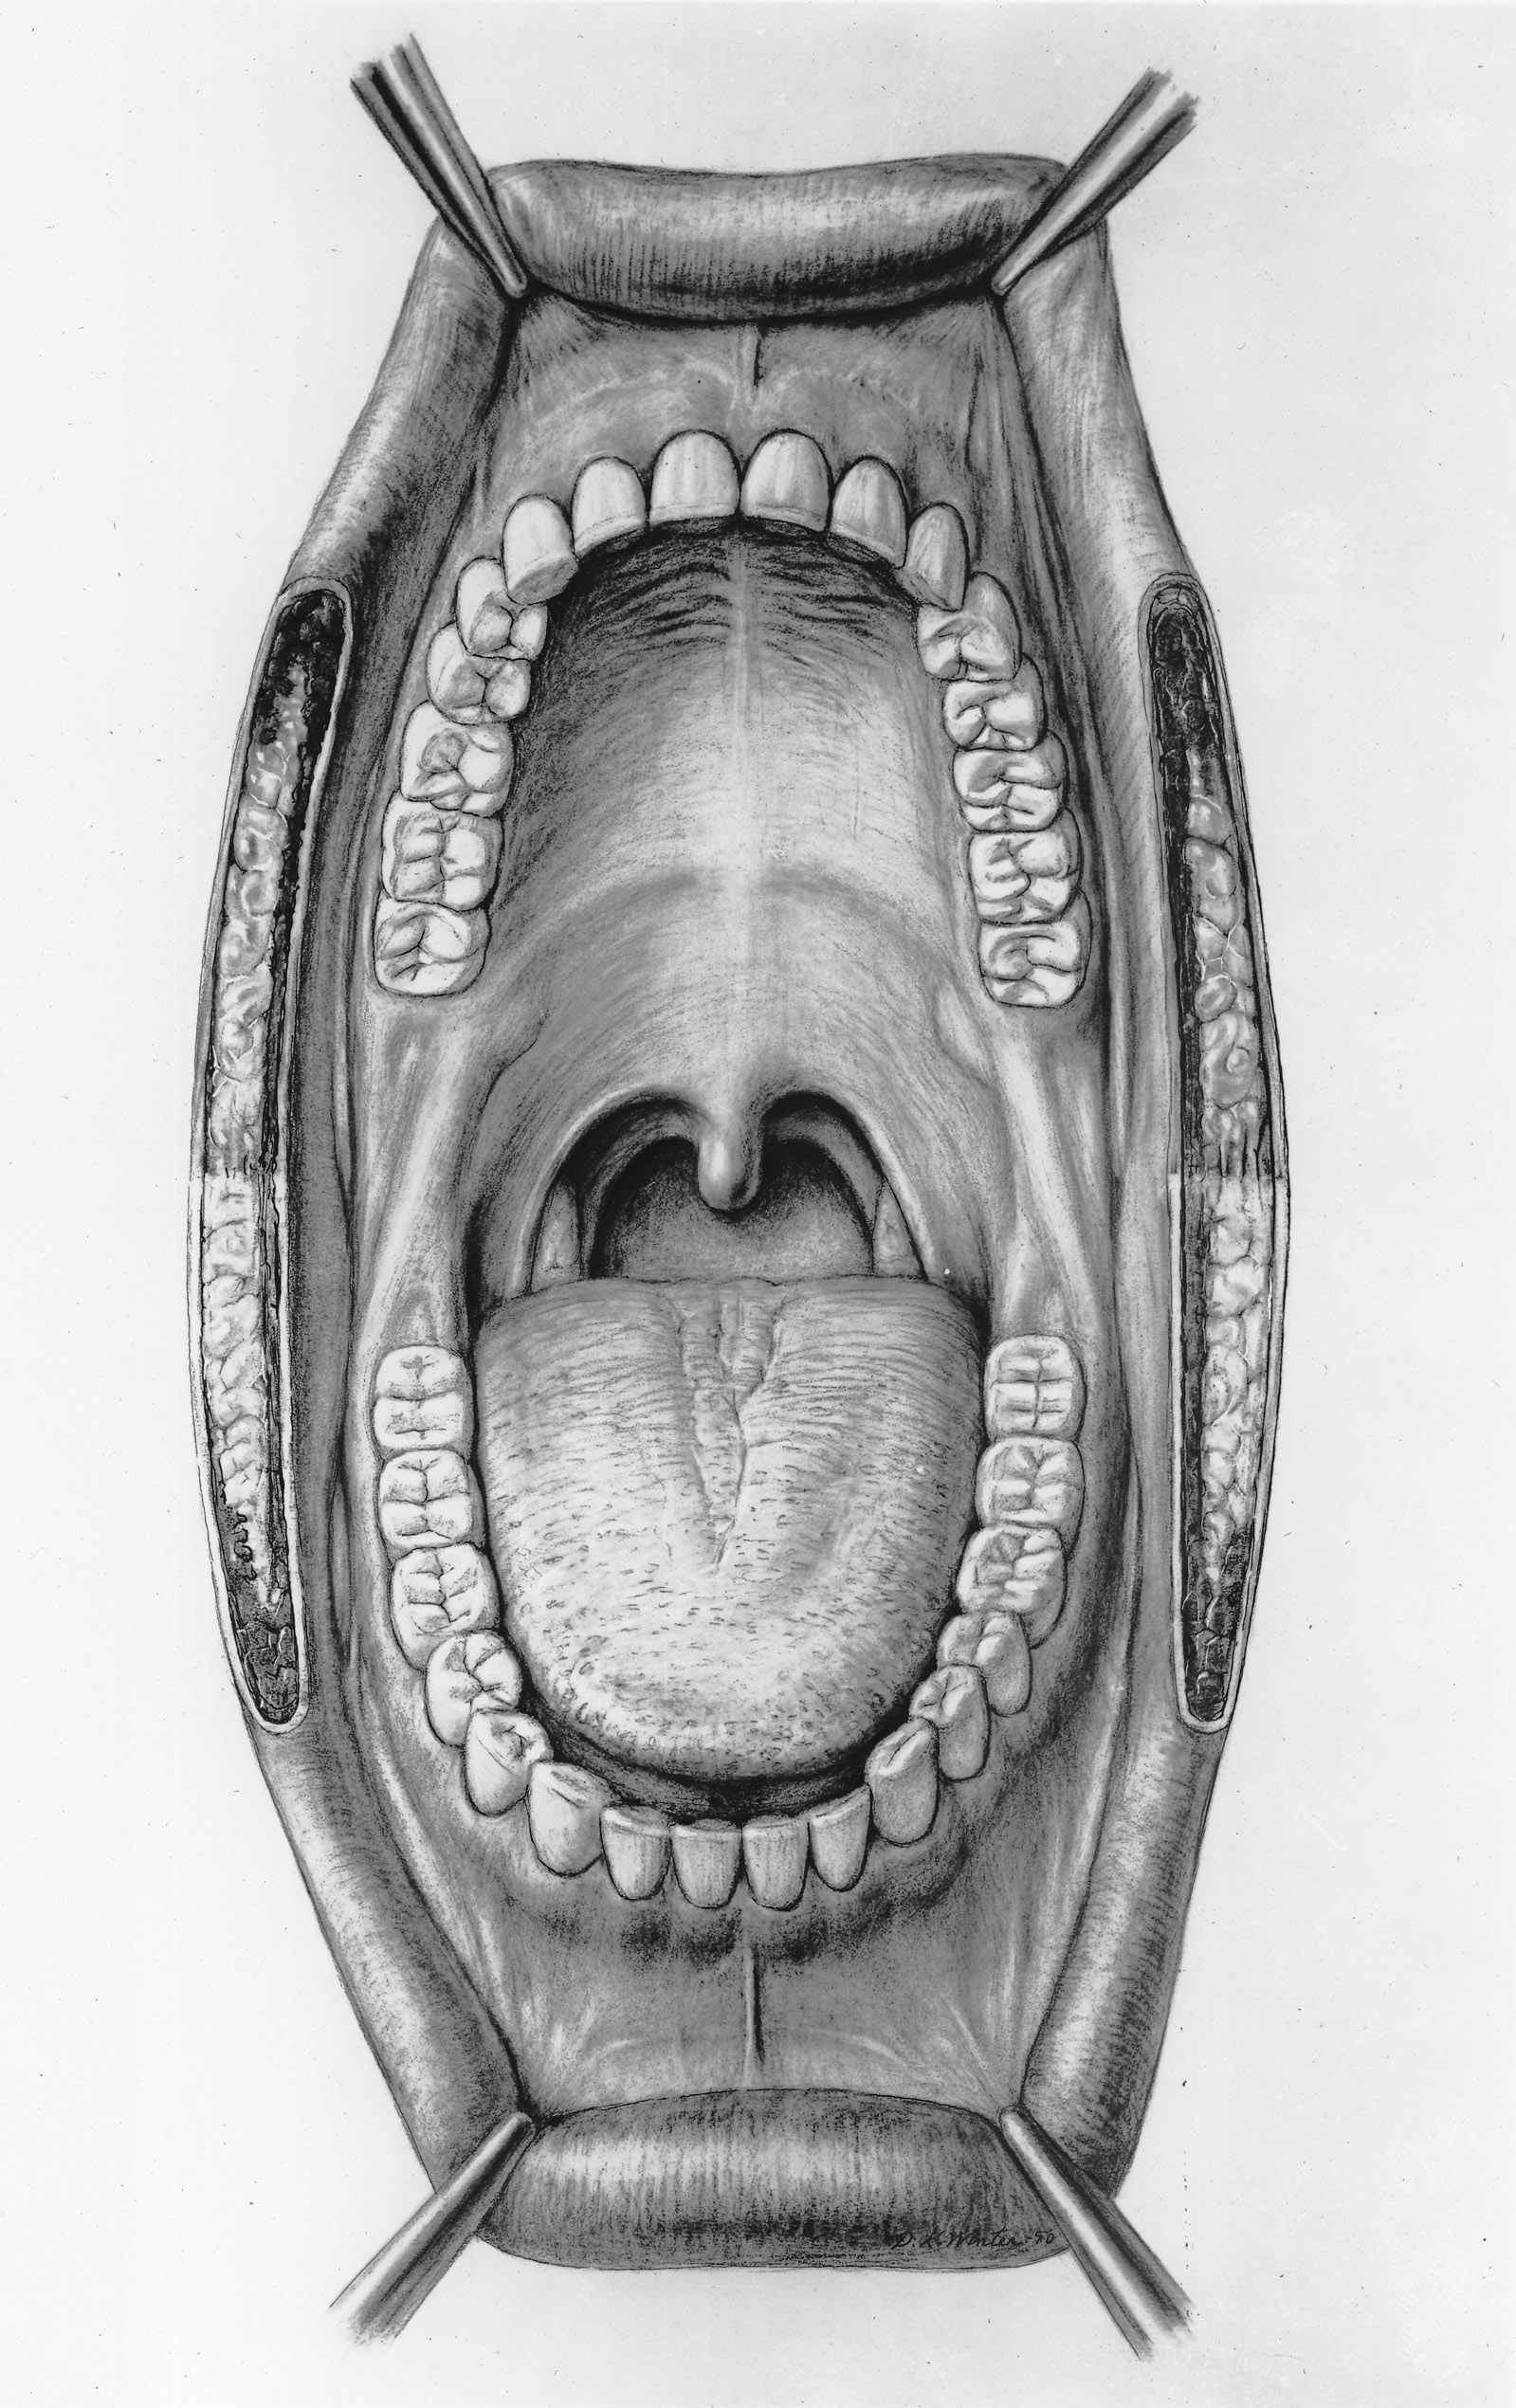 Mouth_illustration-Otis_Archives.jpg